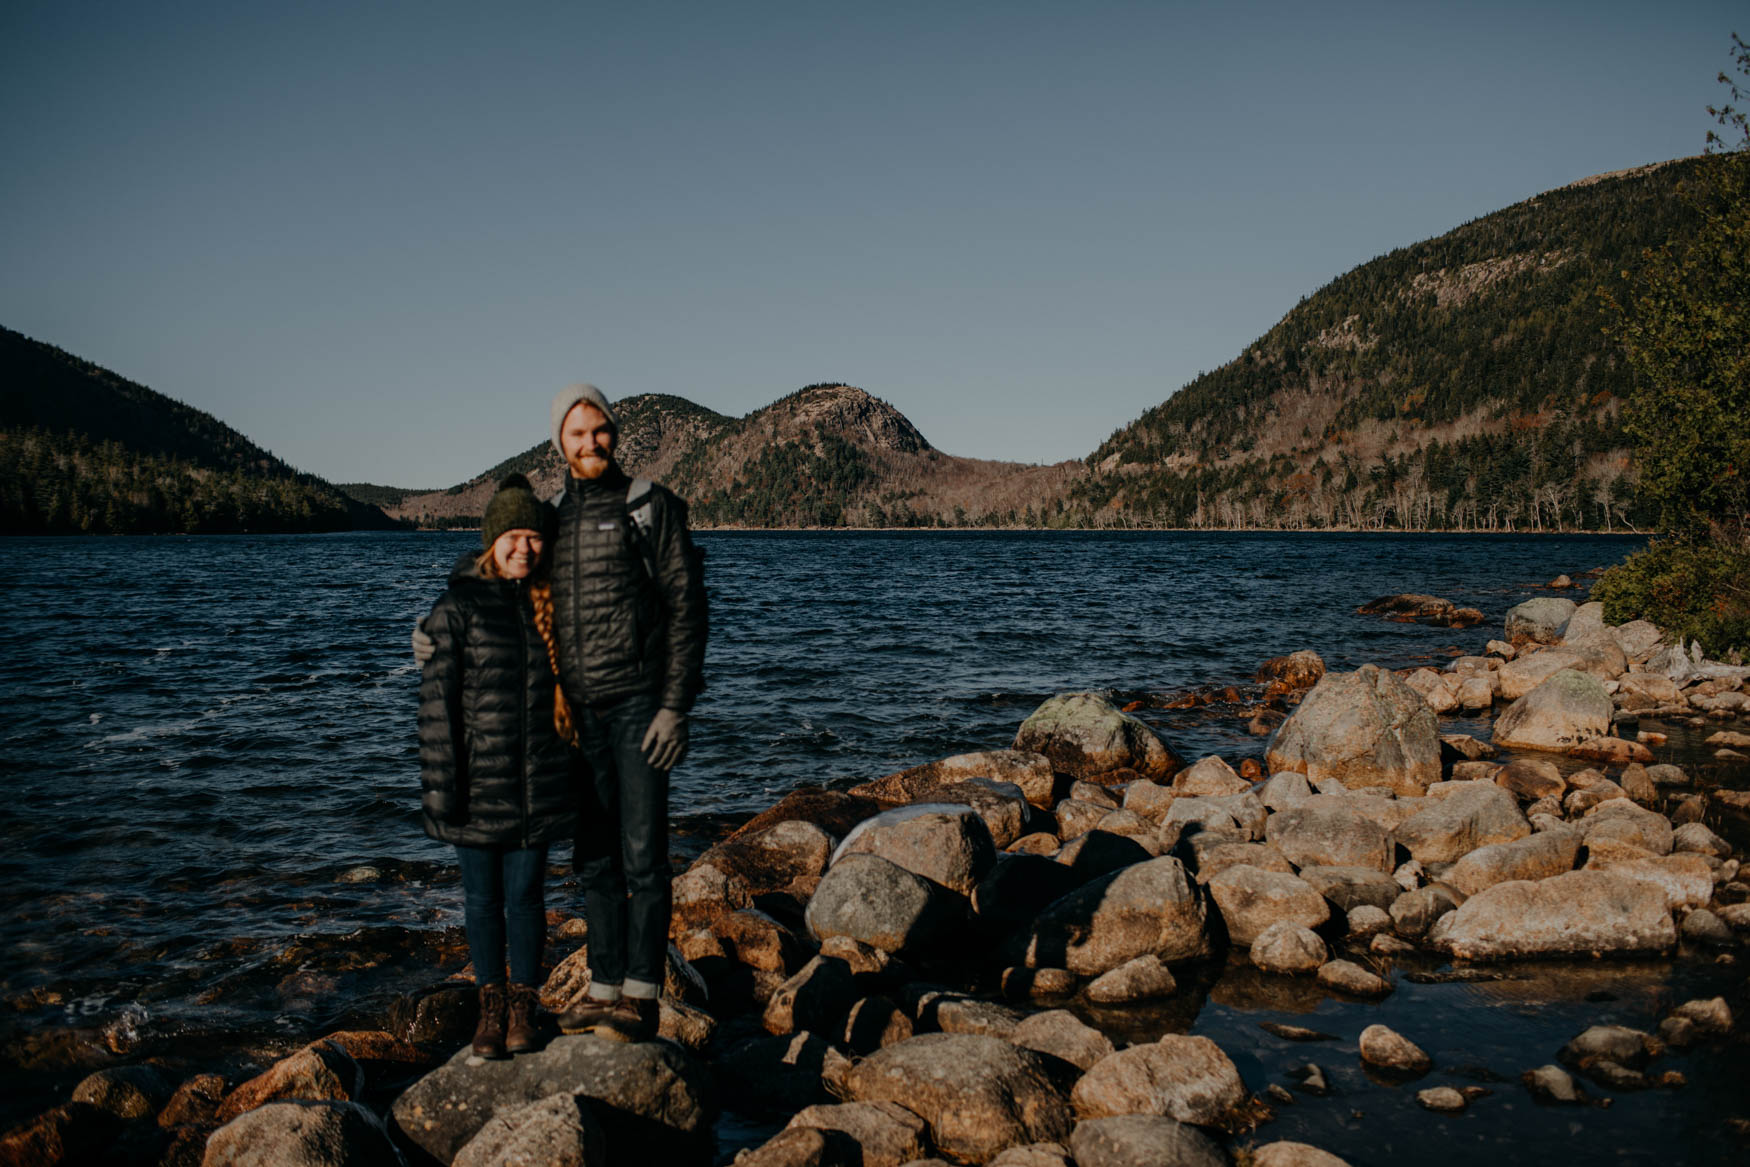 A very out of focus photo of us at Jordan Pond, thank you kind sir for offering to take it for us! Sorry my camera is hard to use haha